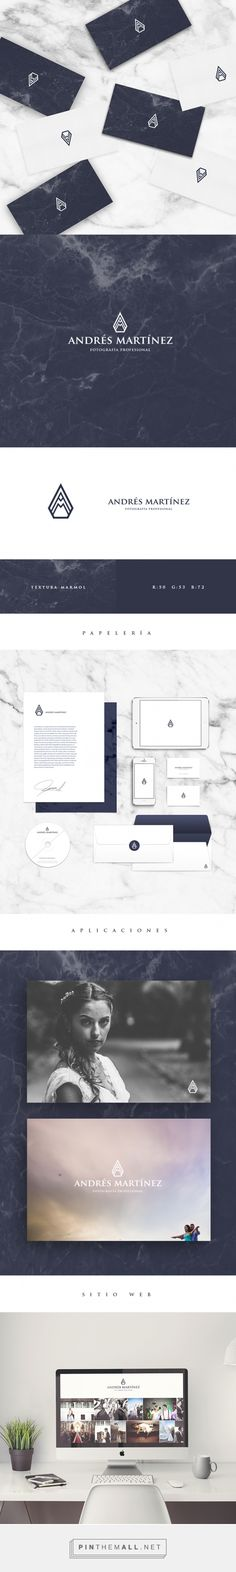 Andrés Martínez Branding on Behance | Fivestar Branding – Design and Branding Agency & Inspiration Gallery